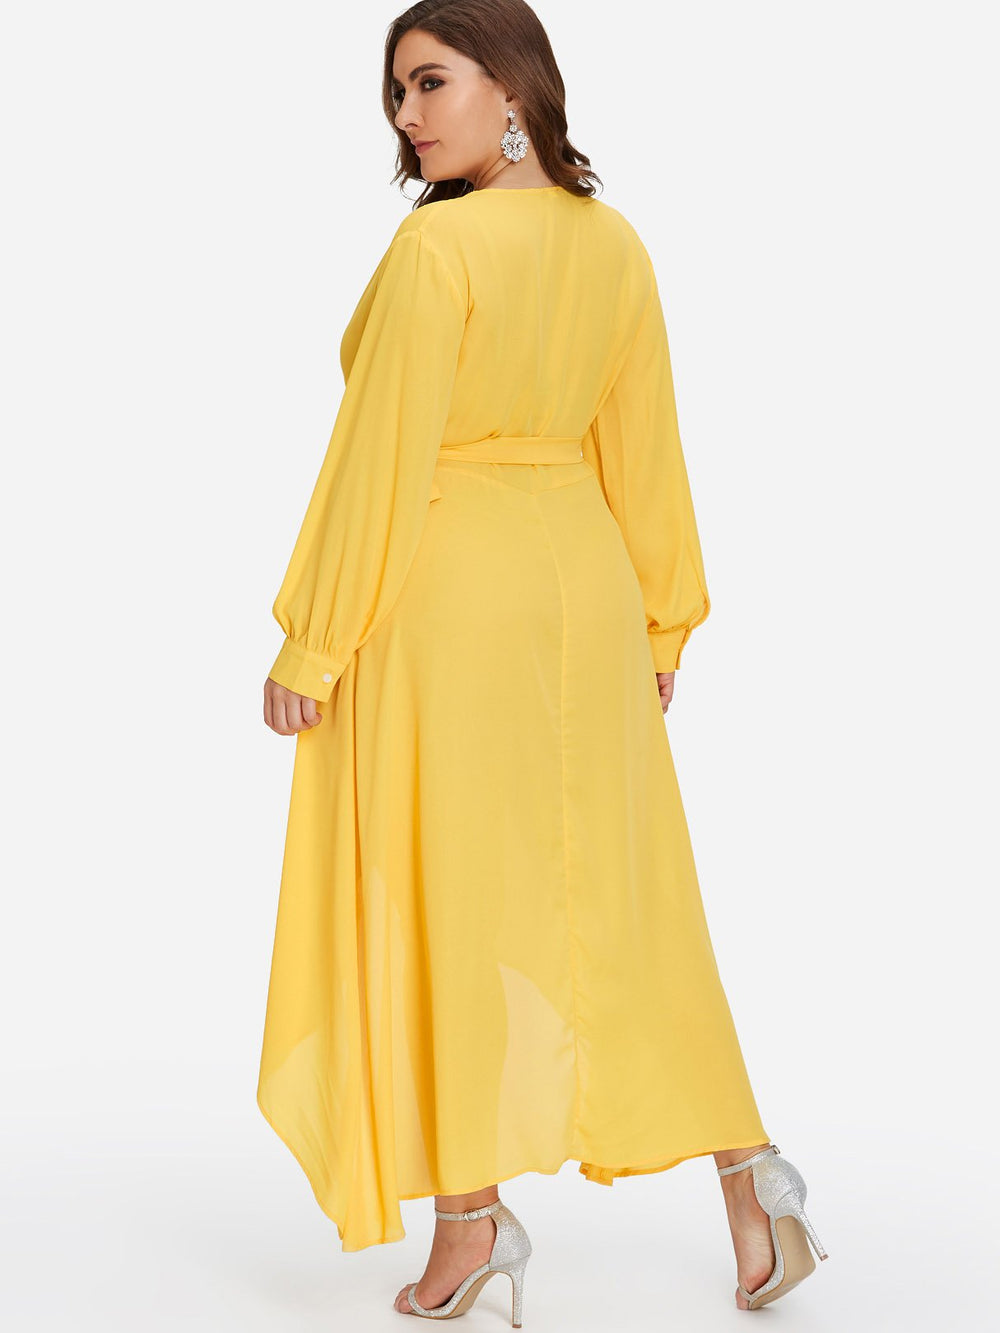 Womens Yellow Plus Size Dresses